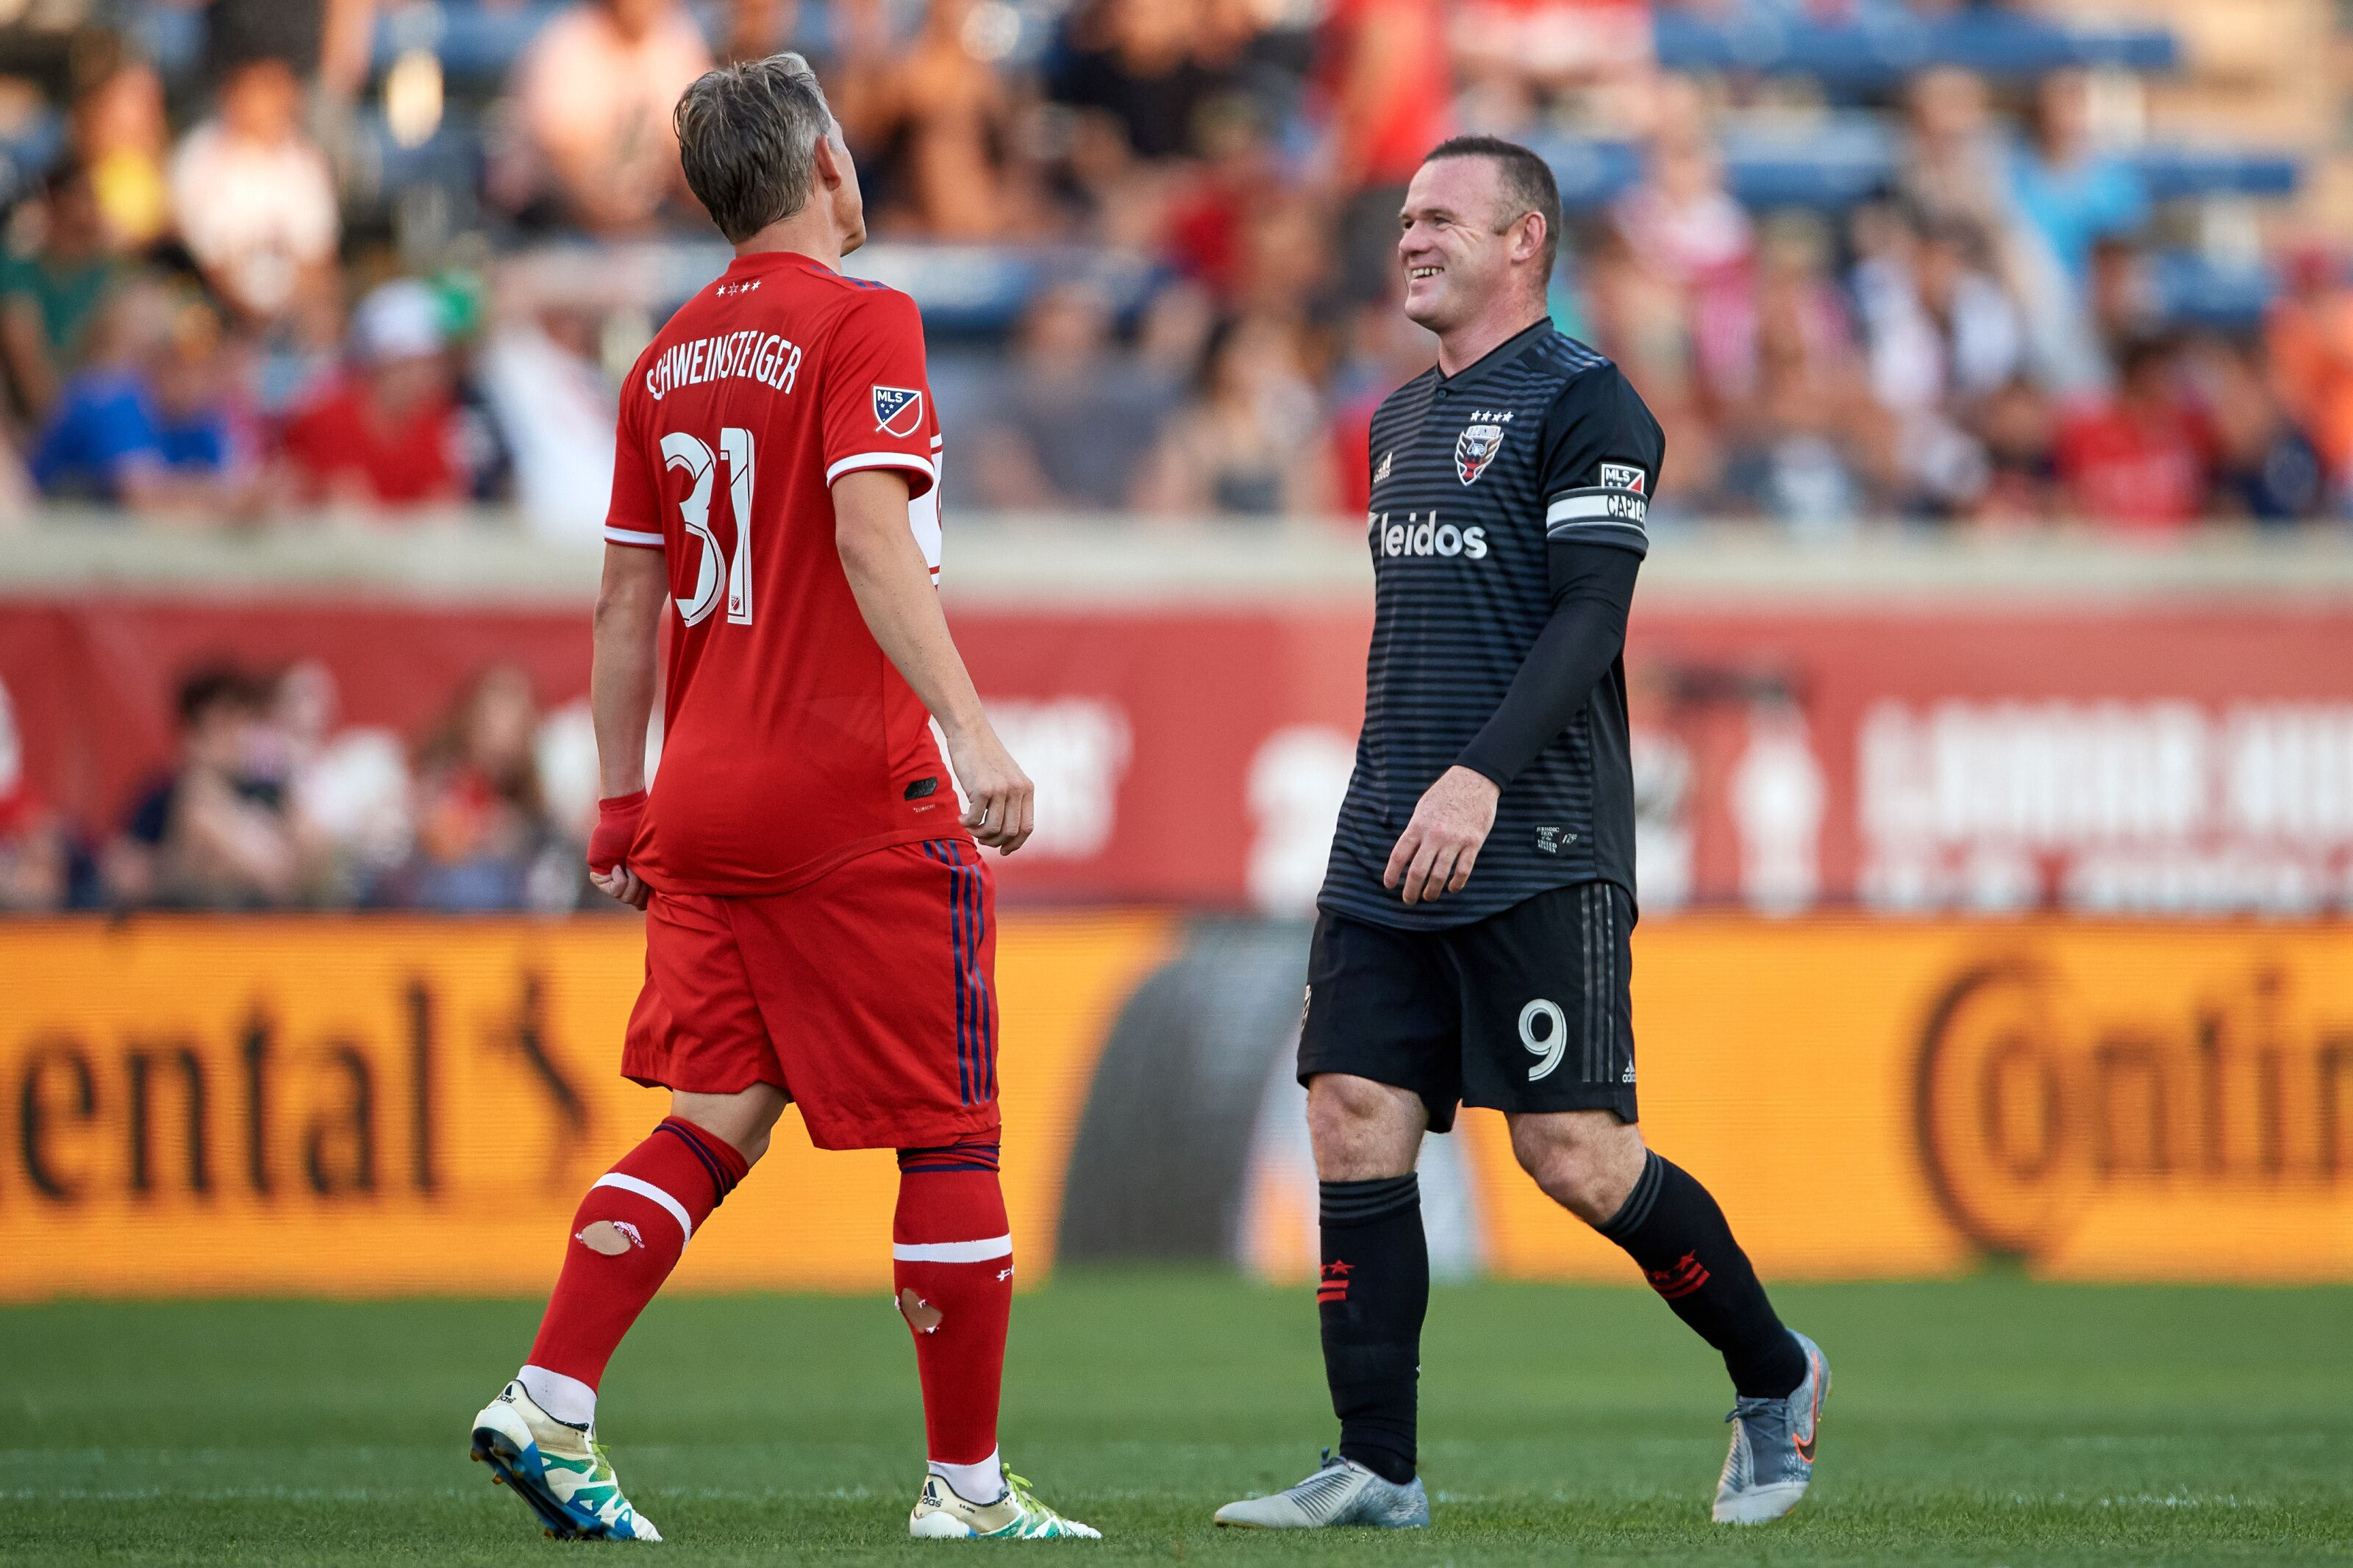 best website 41b72 22790 Chicago Fire Vs D.C. United: 3 things we learned - Bore draw ...